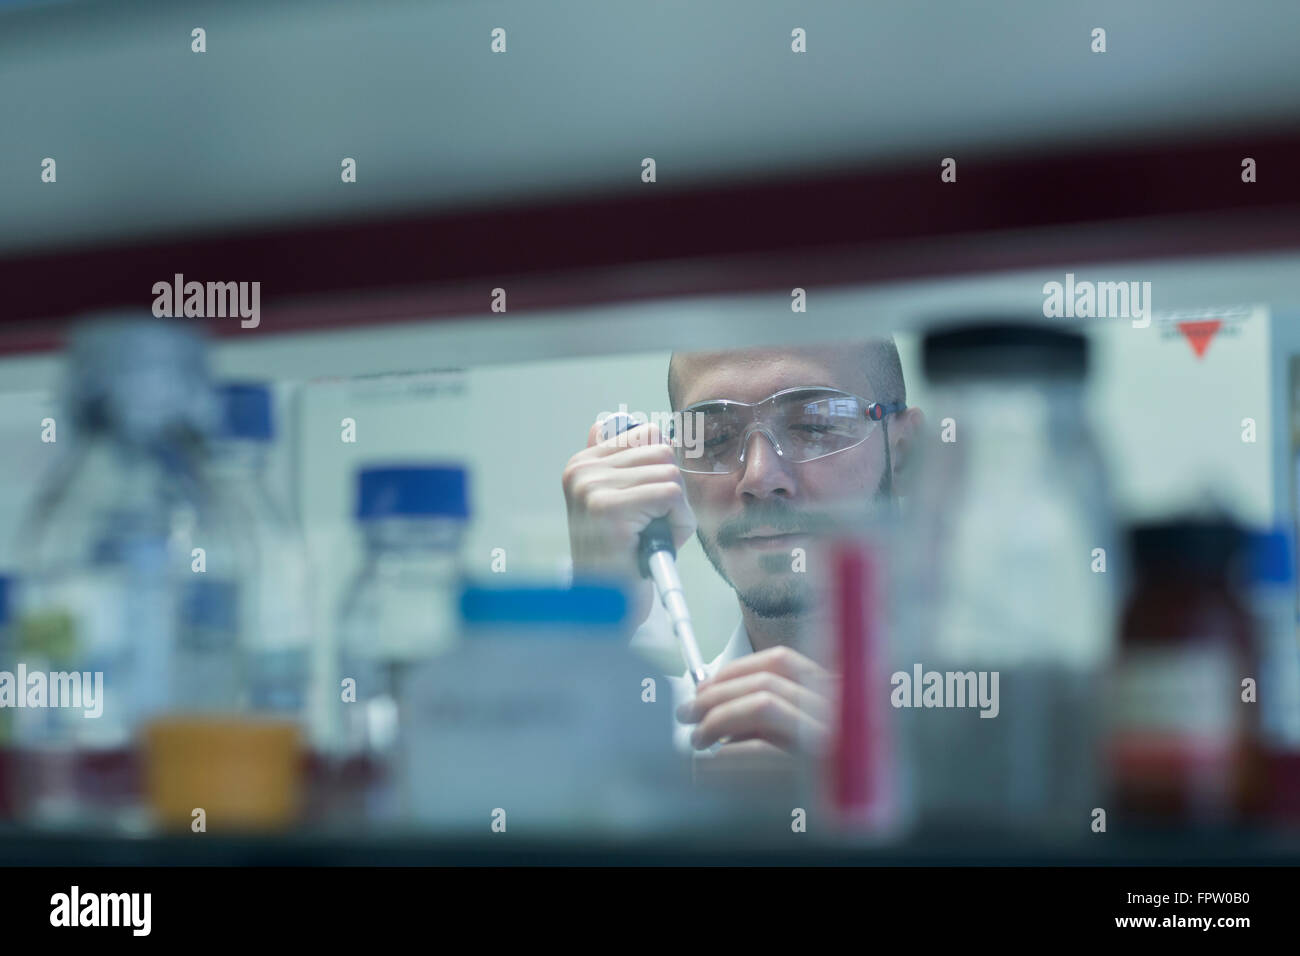 Container Freiburg Laboratory Container Stock Photos Laboratory Container Stock